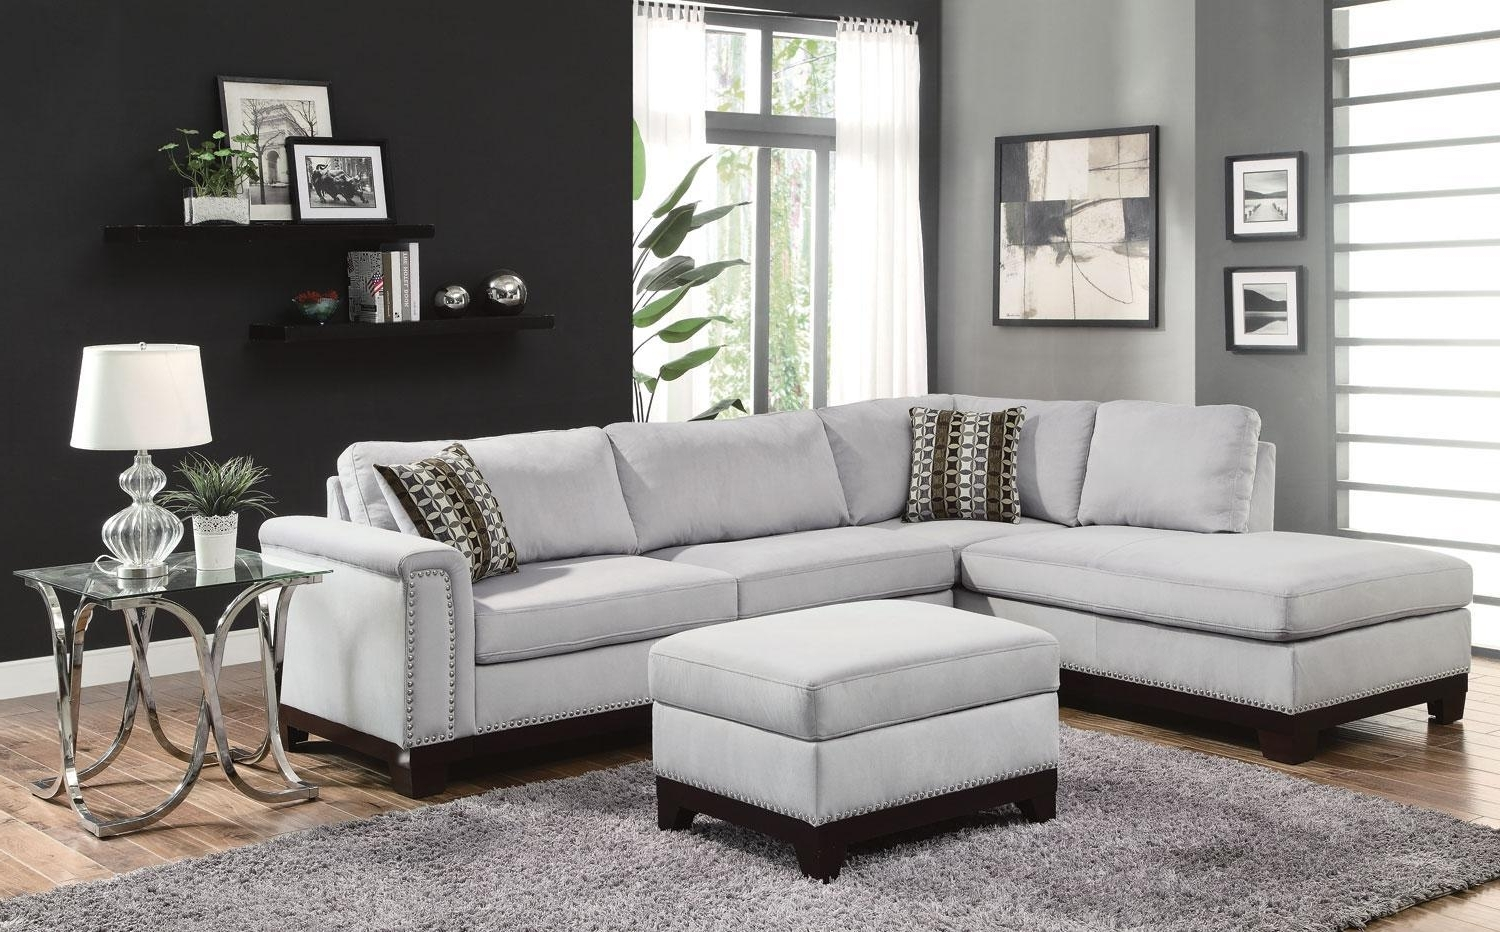 Best Sofas Ideas – Sofascouch Pertaining To Current Sectional Sofas With Nailheads (View 3 of 20)